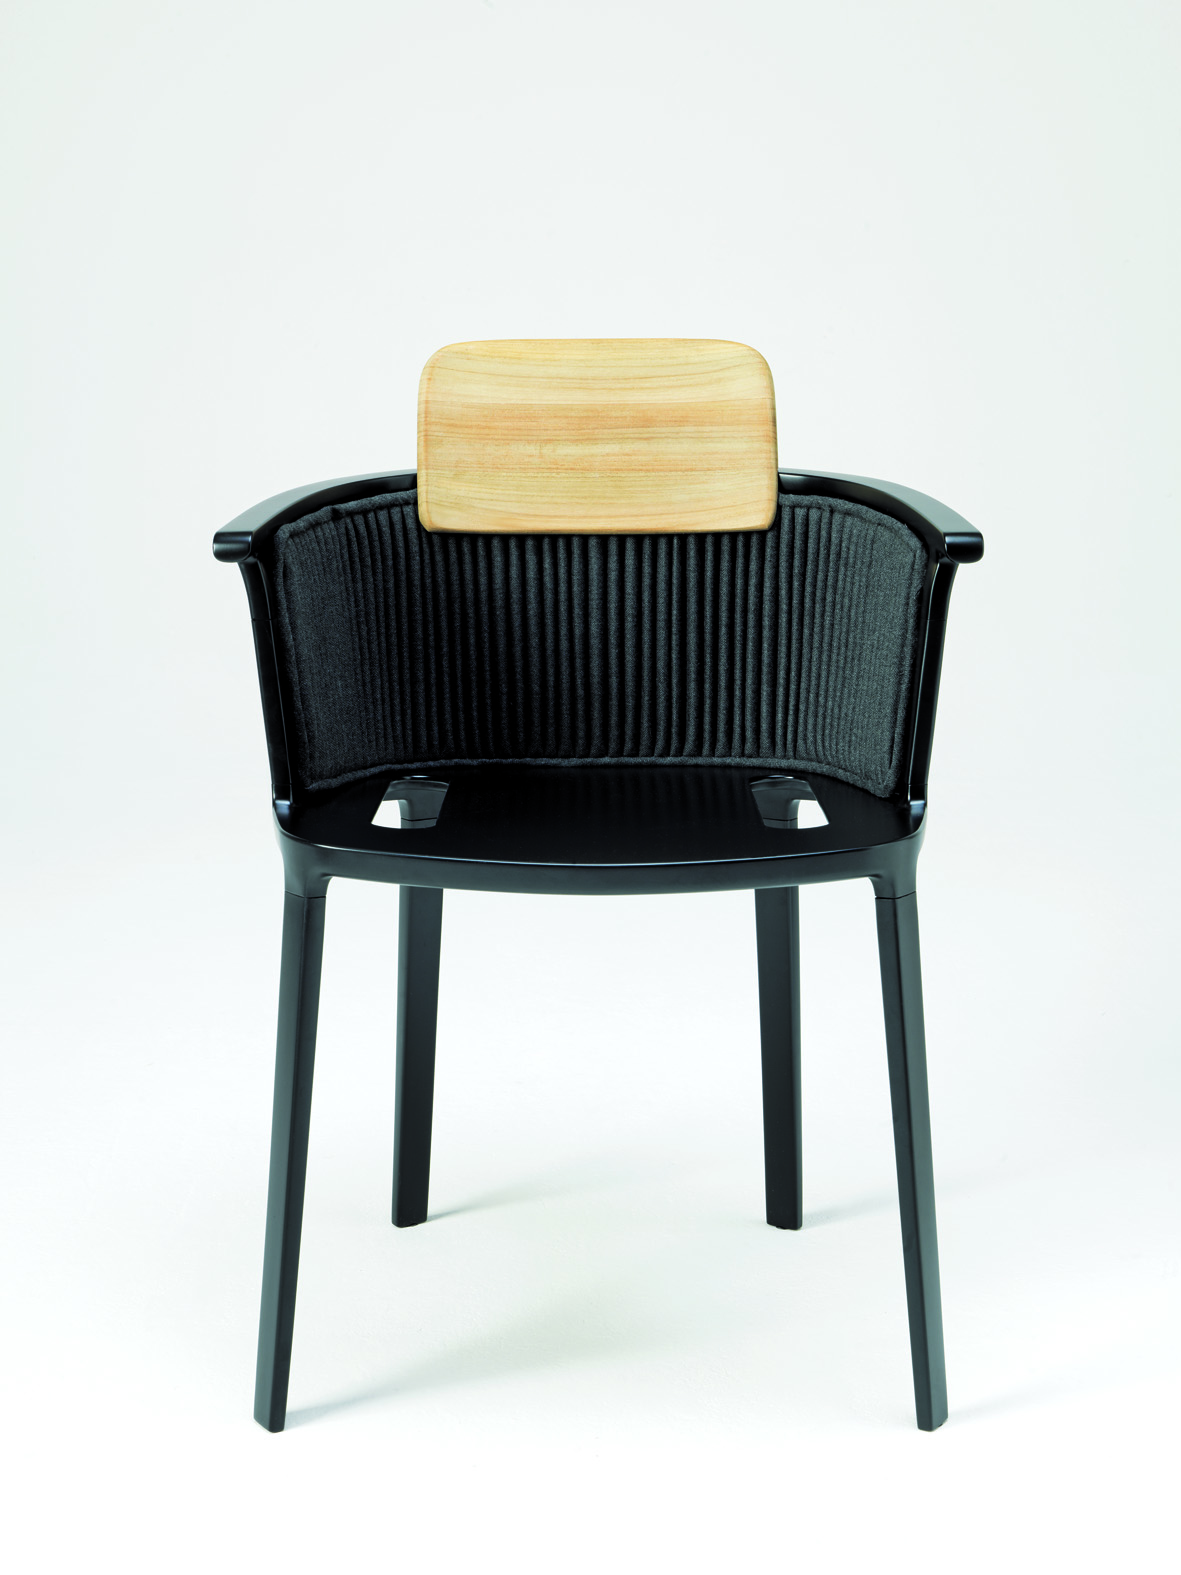 Nicolette Chair by Patrick Norguet for Ethimo